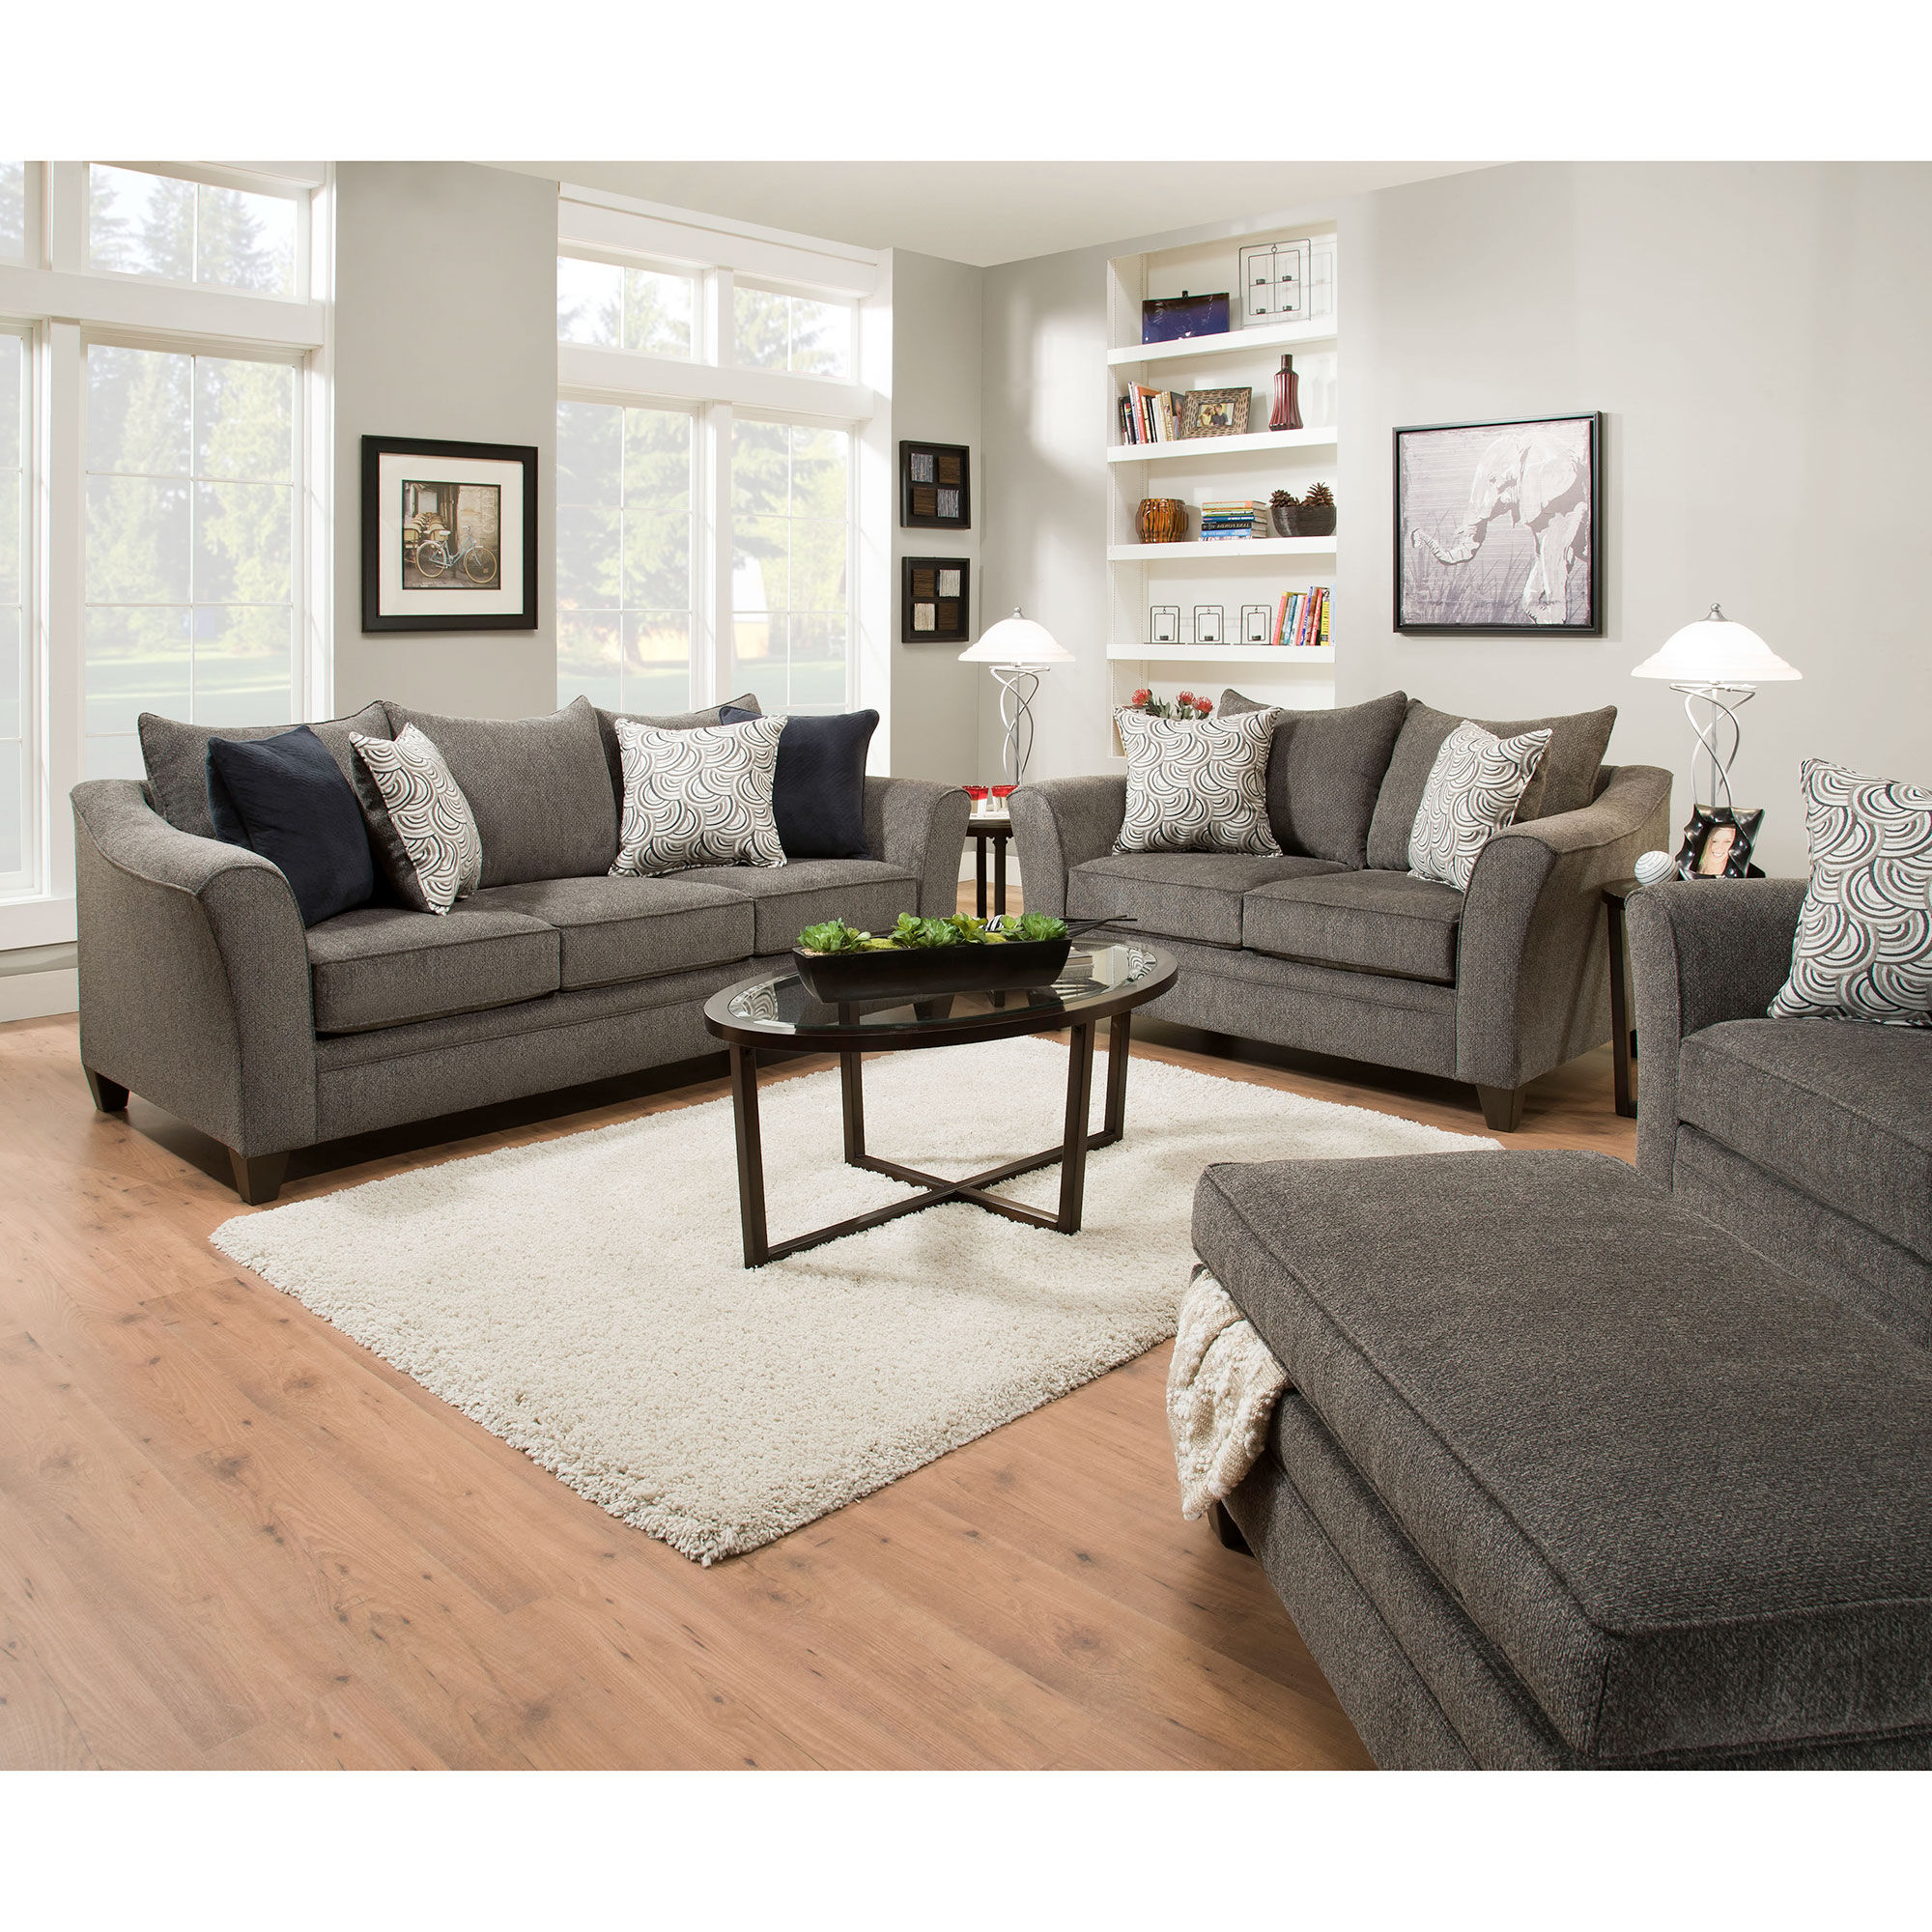 4 Piece Jada Living Room Collection United Furniture